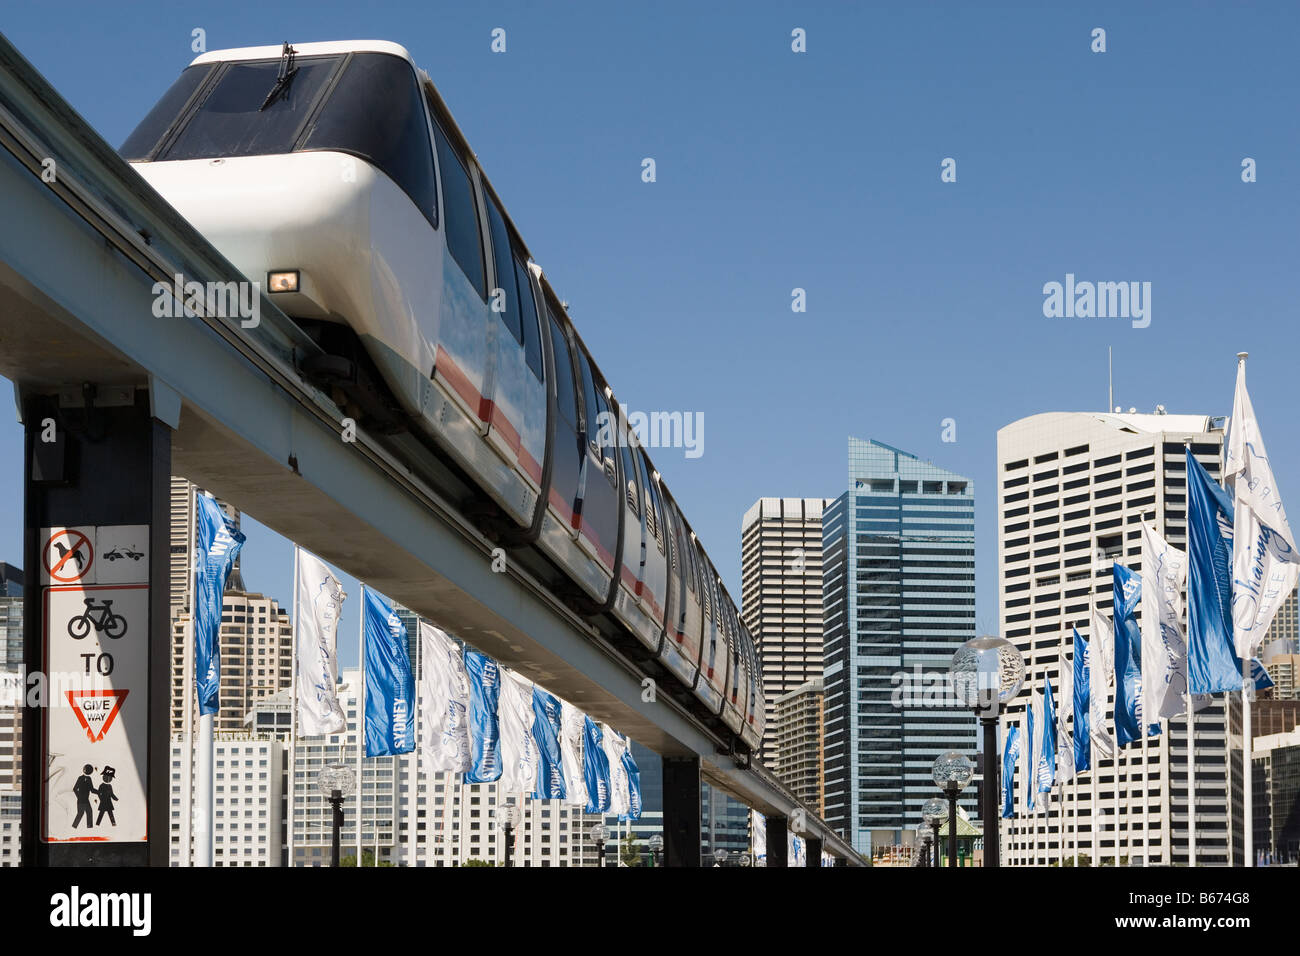 Monorail at darling harbour - Stock Image